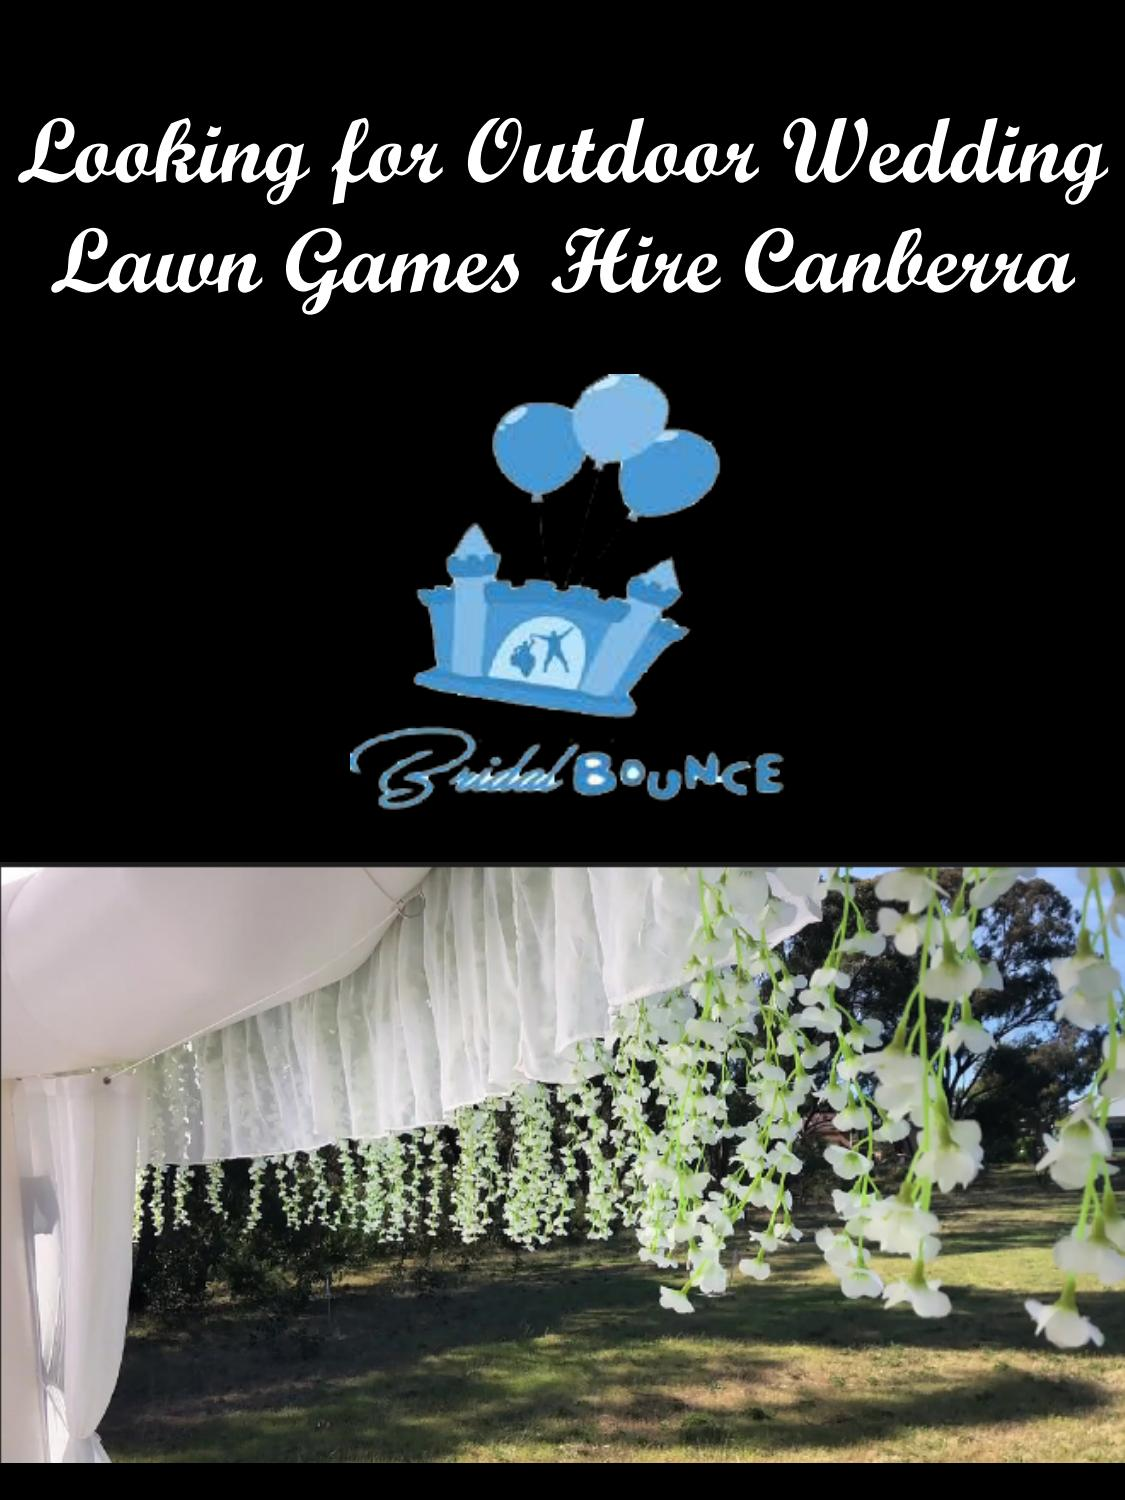 Looking For Outdoor Wedding Lawn Games Hire Canberra By Bridalbounce Issuu